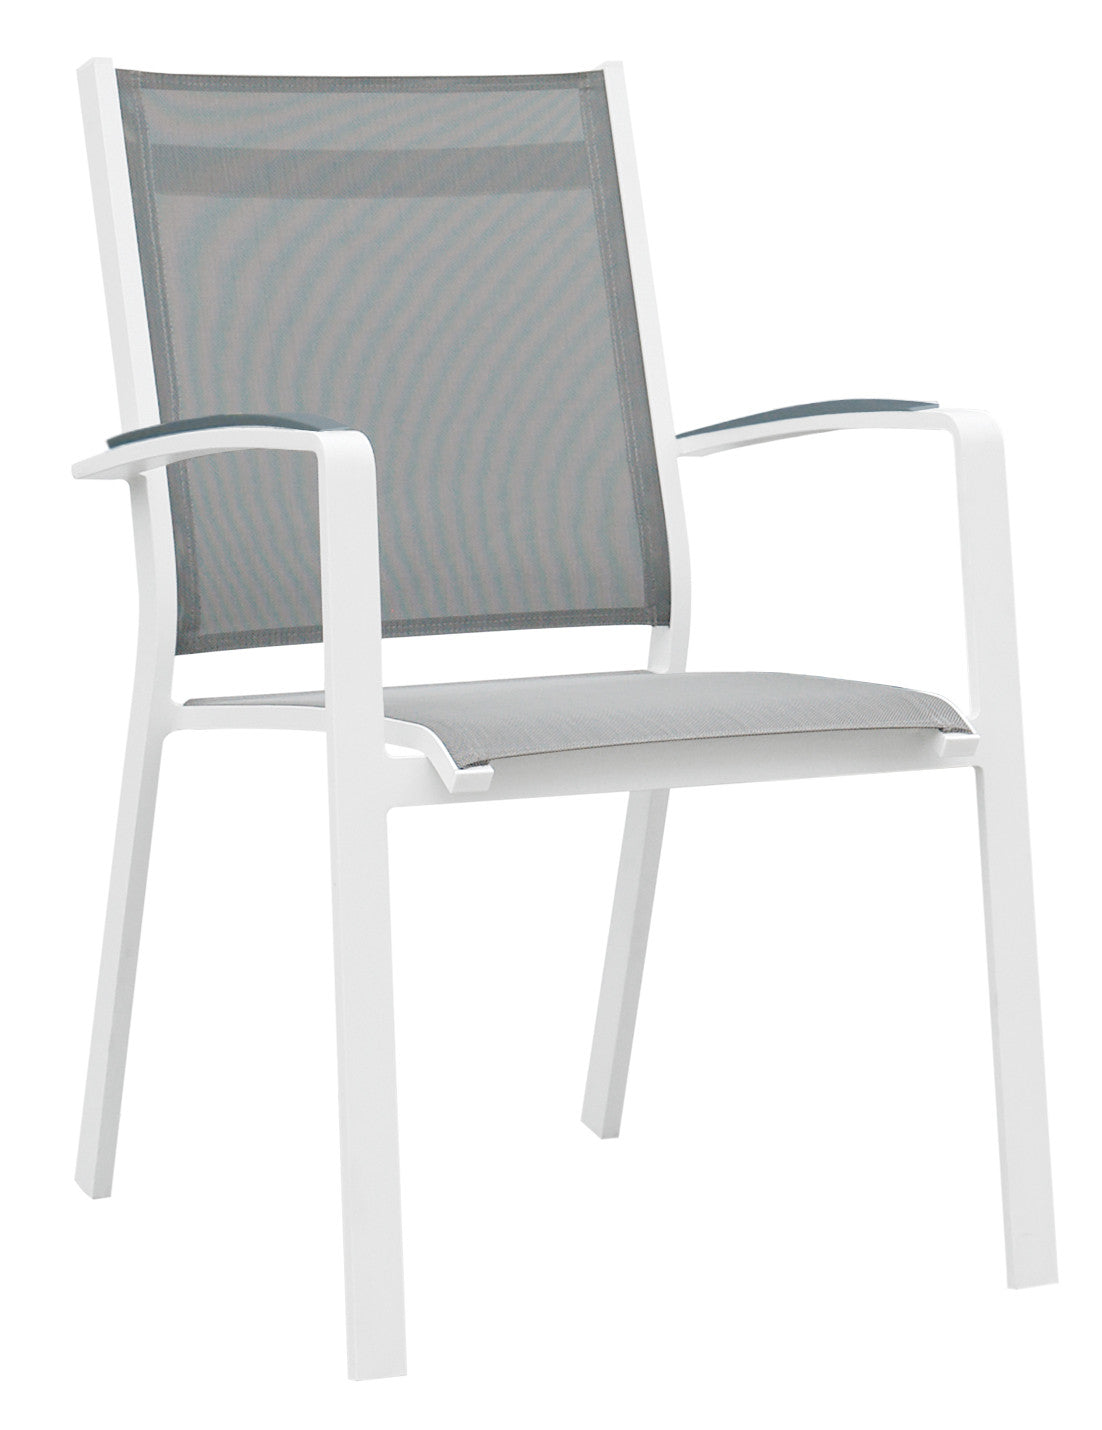 9 Piece Modern Patio Dining Set - Gray / White  sc 1 st  Urban Furnishing : outdoor patio dining chairs - thejasonspencertrust.org